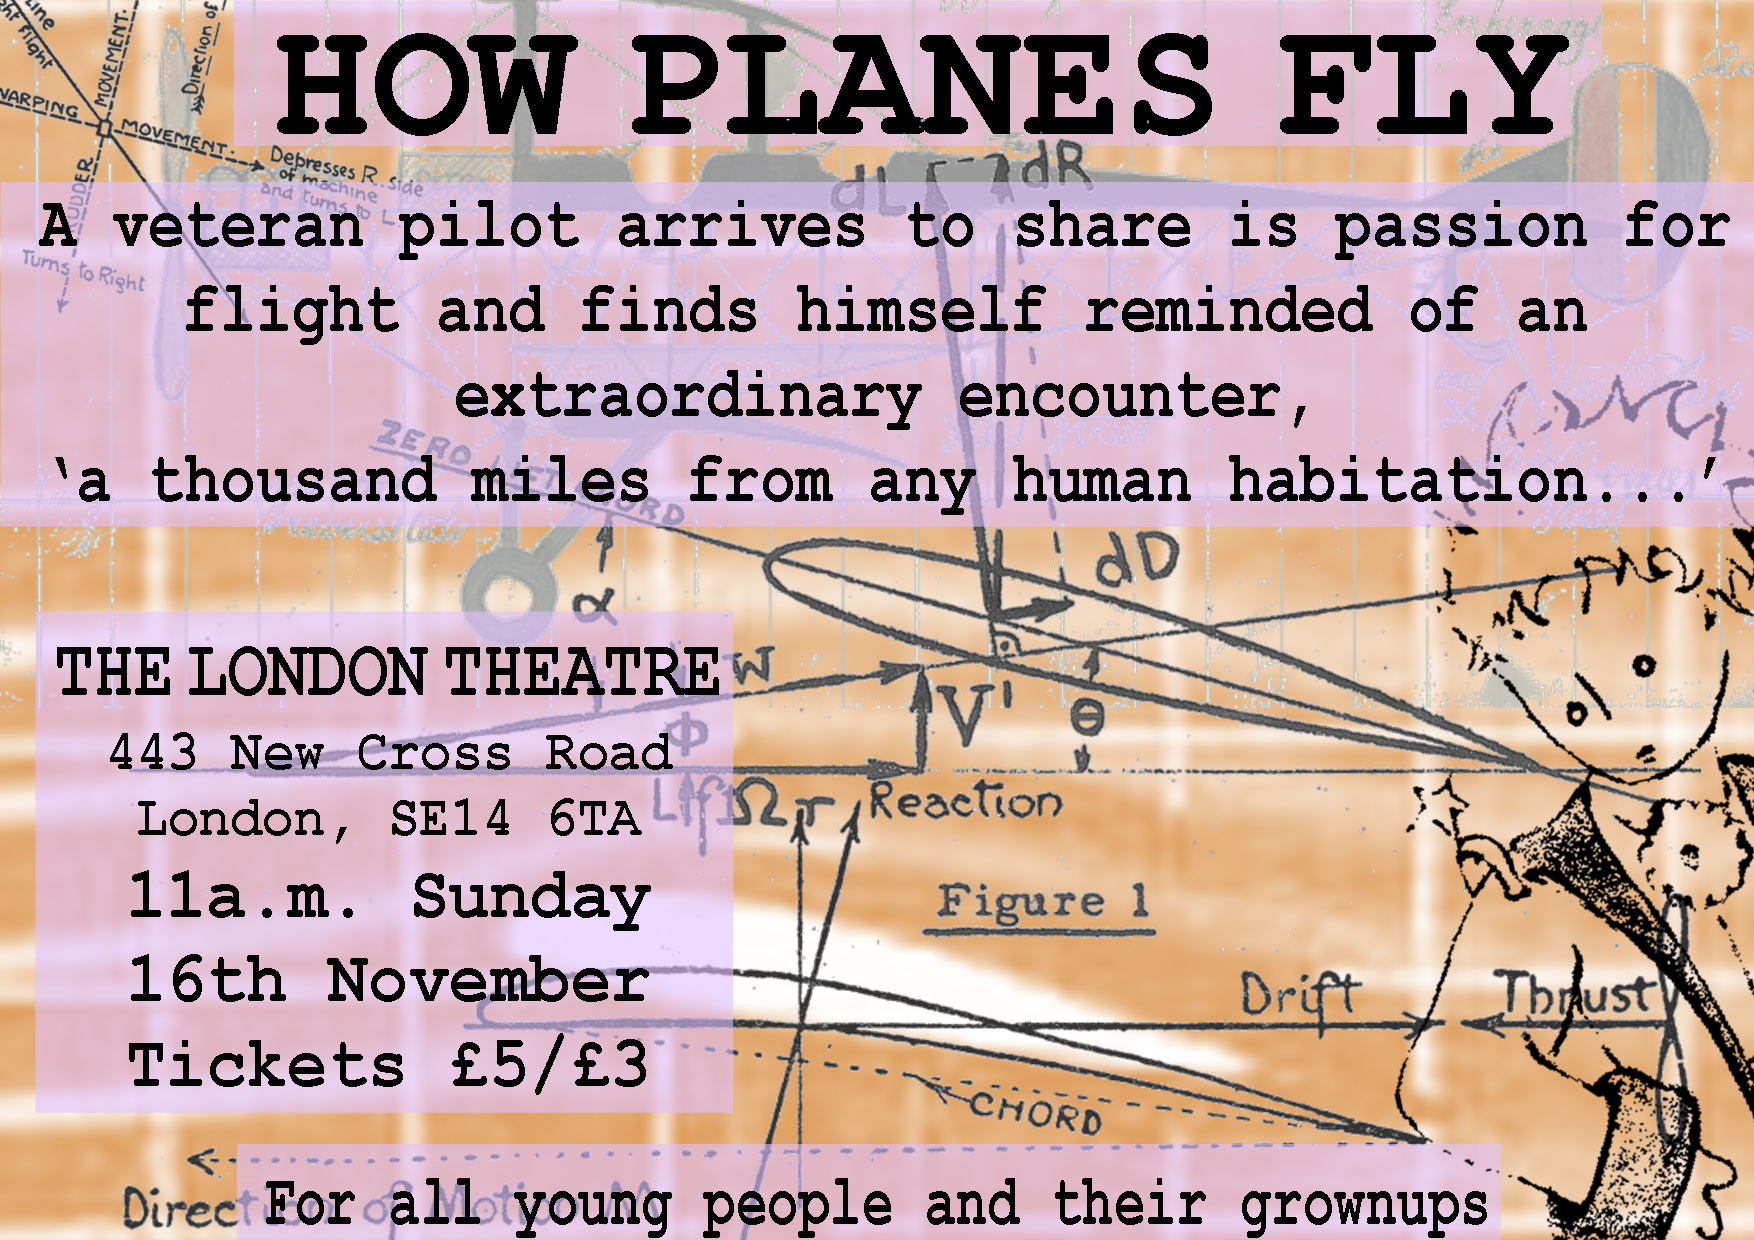 Lawrence O'Connor - How Planes Fly - Postcard-v2.png